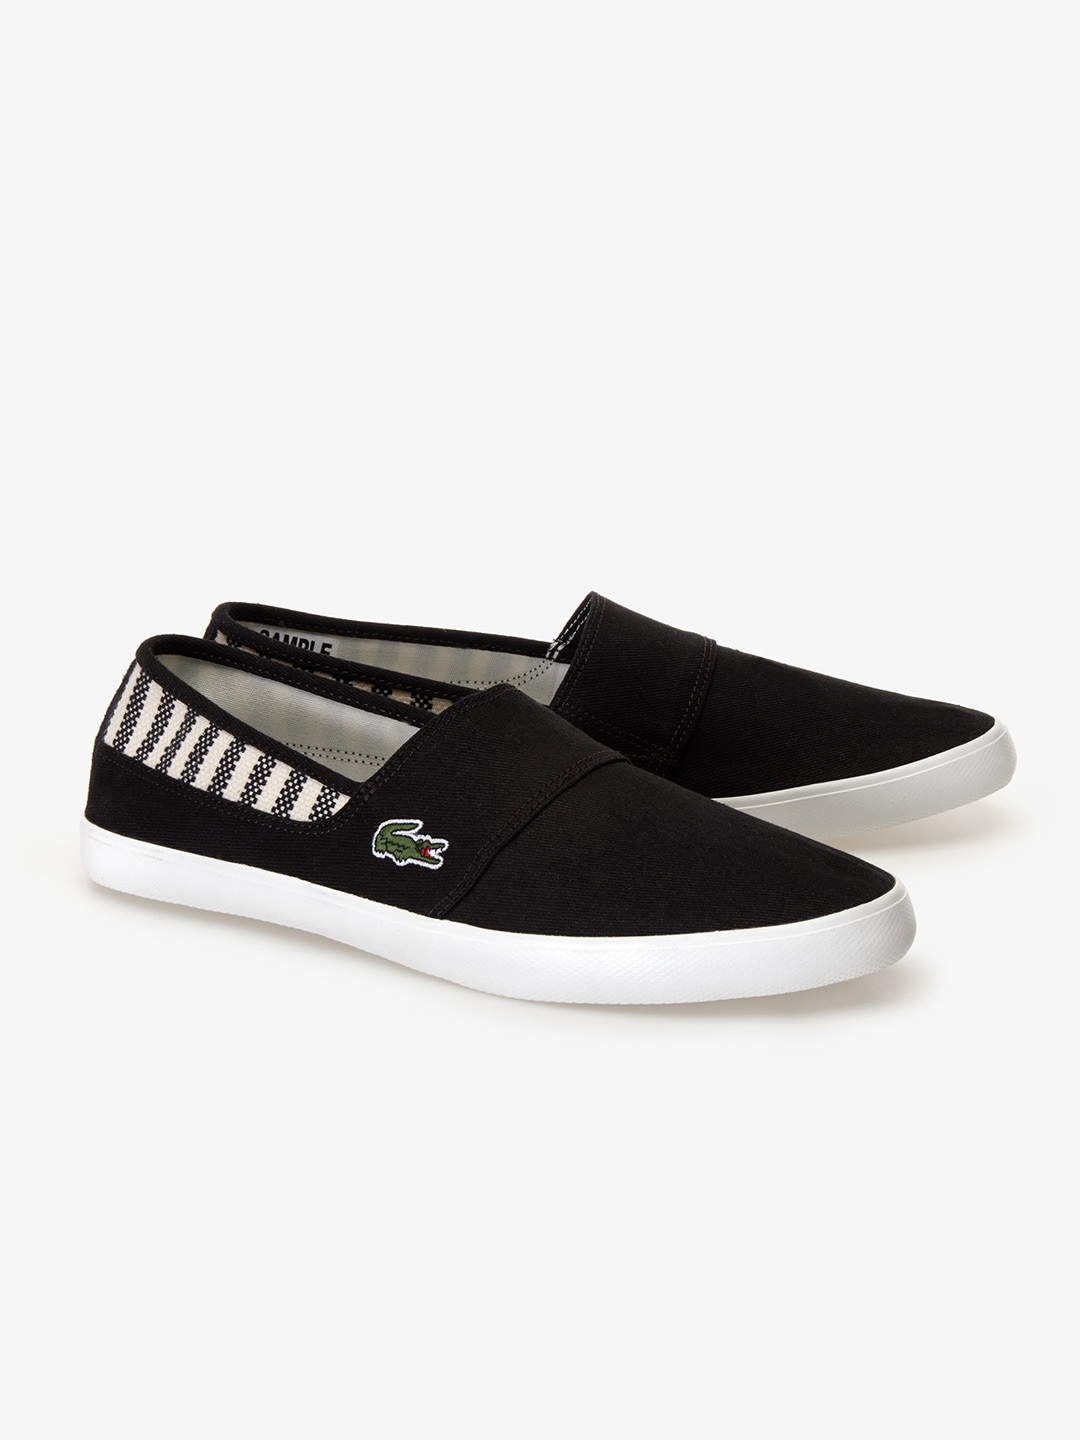 692d878639 Lacoste Casual Shoes - Buy Lacoste Casual Shoes online in India